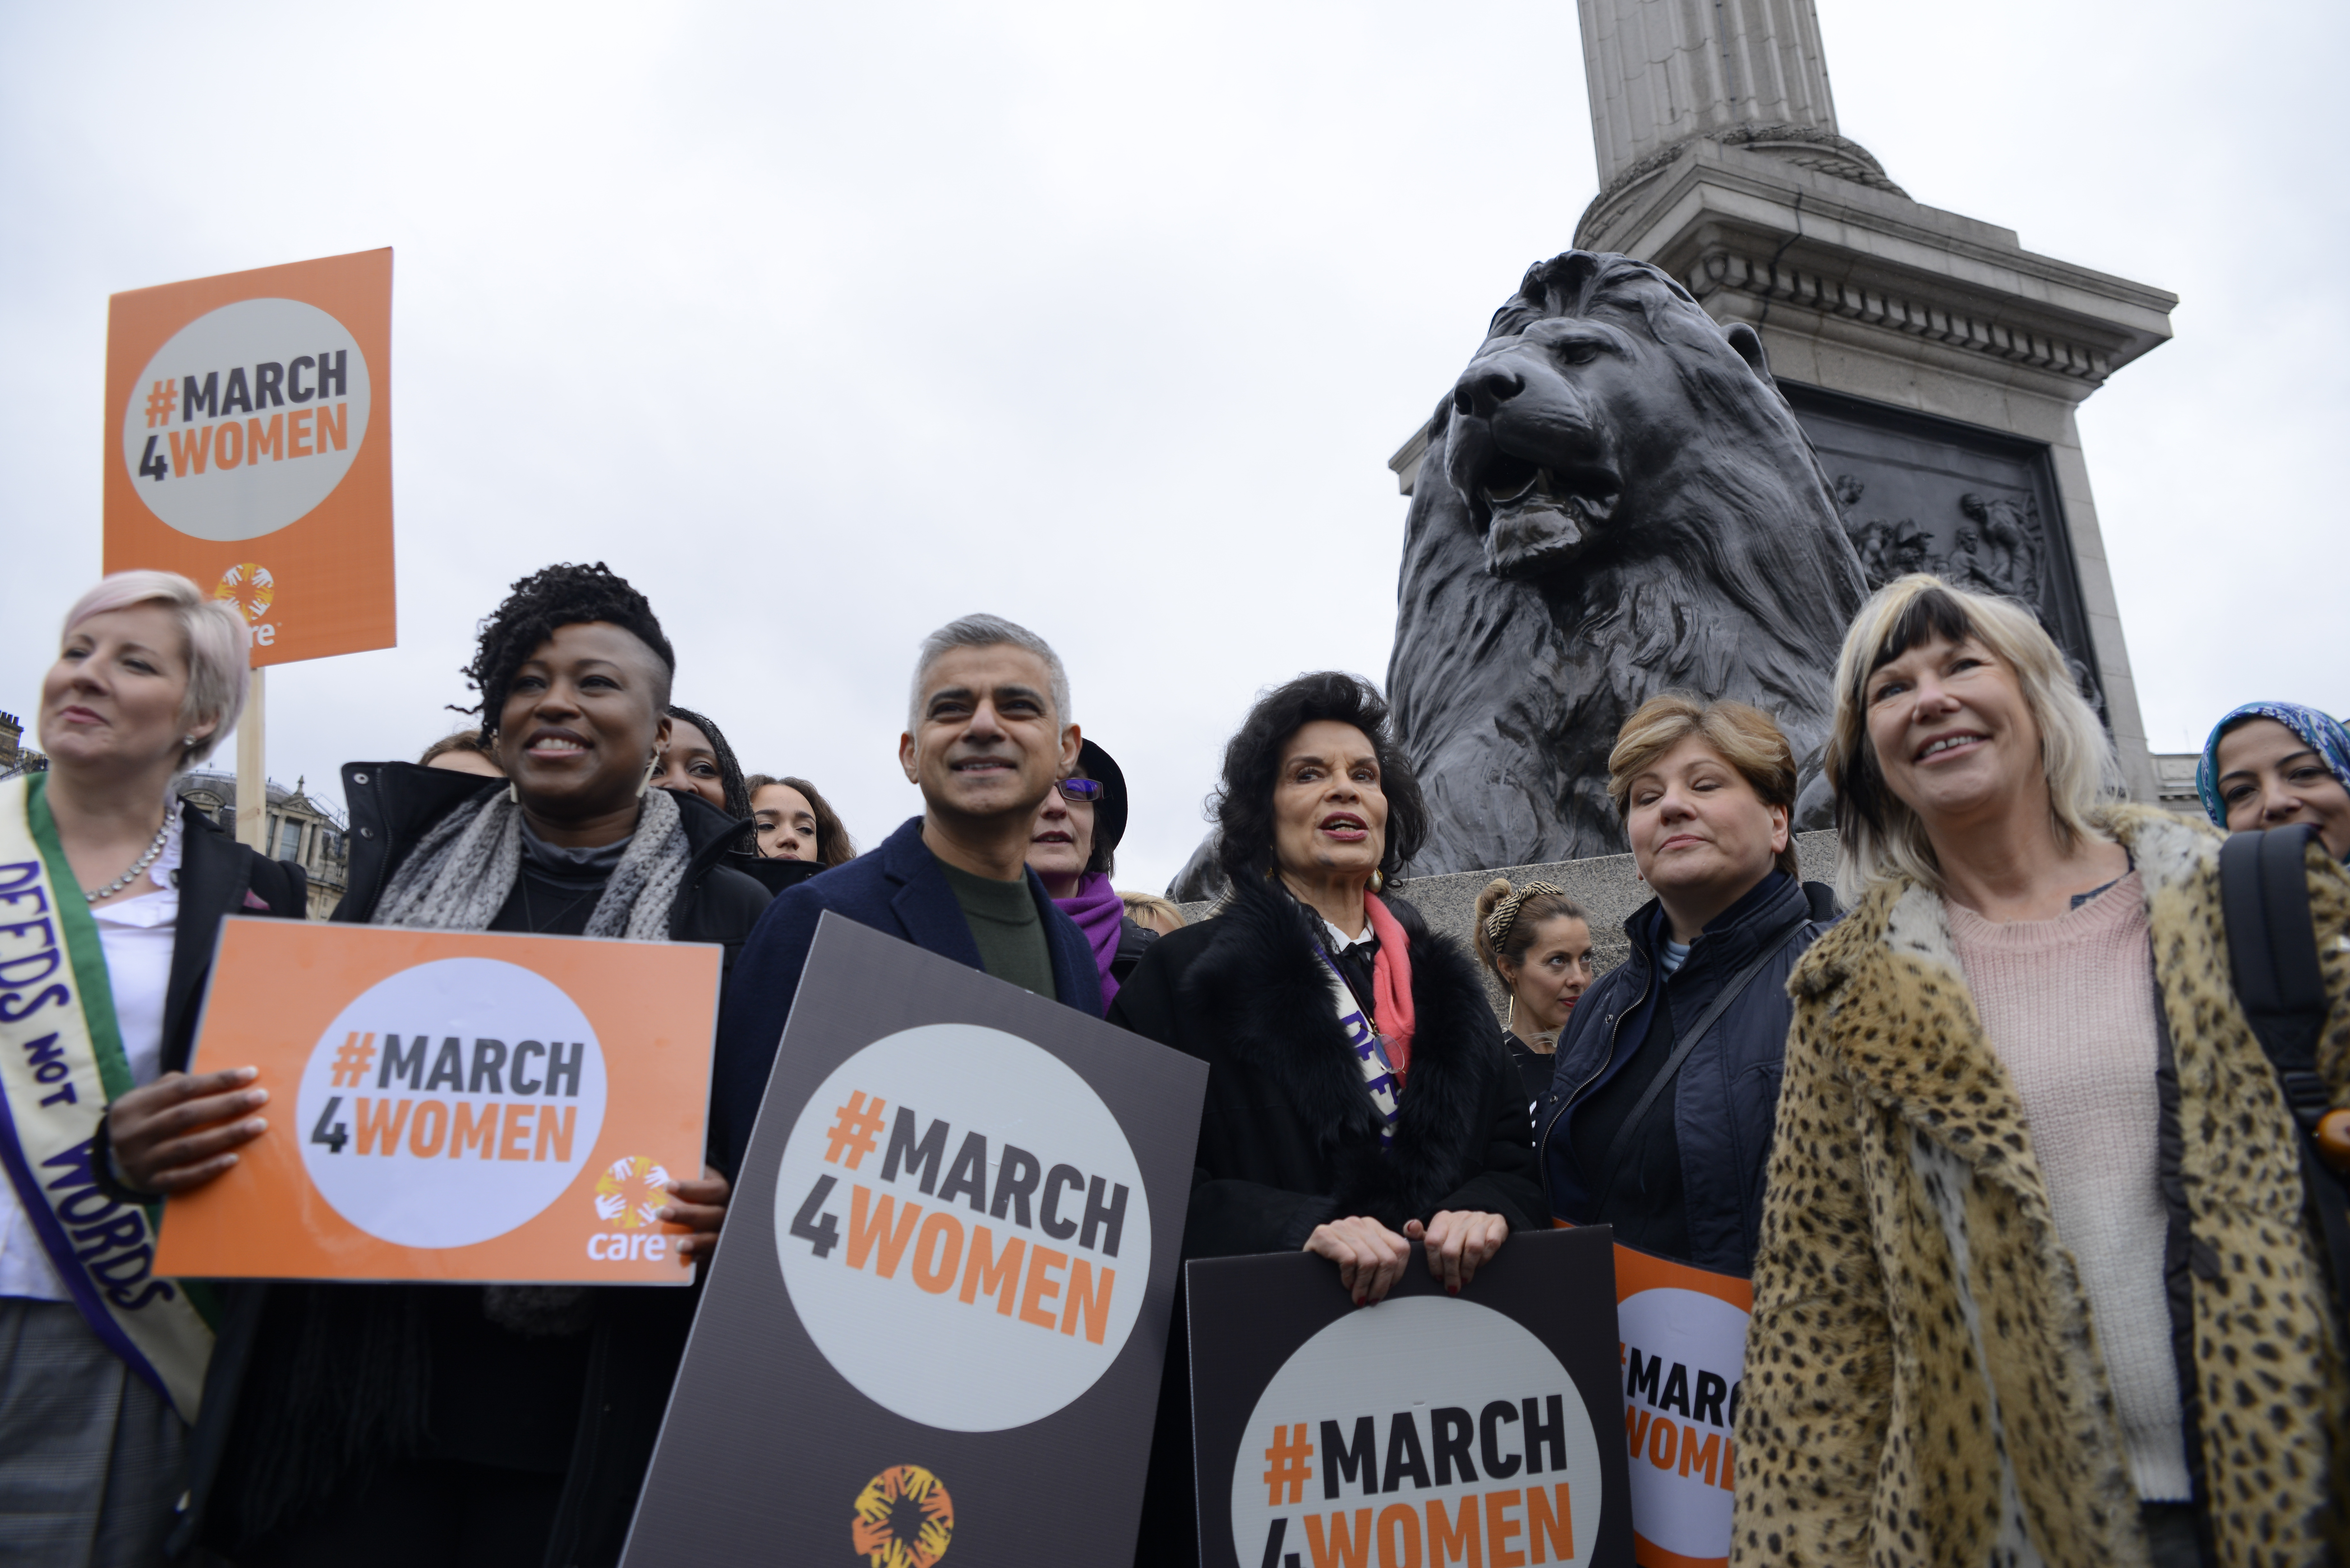 #March4Rally in London earlier this year. Credit: PA Images